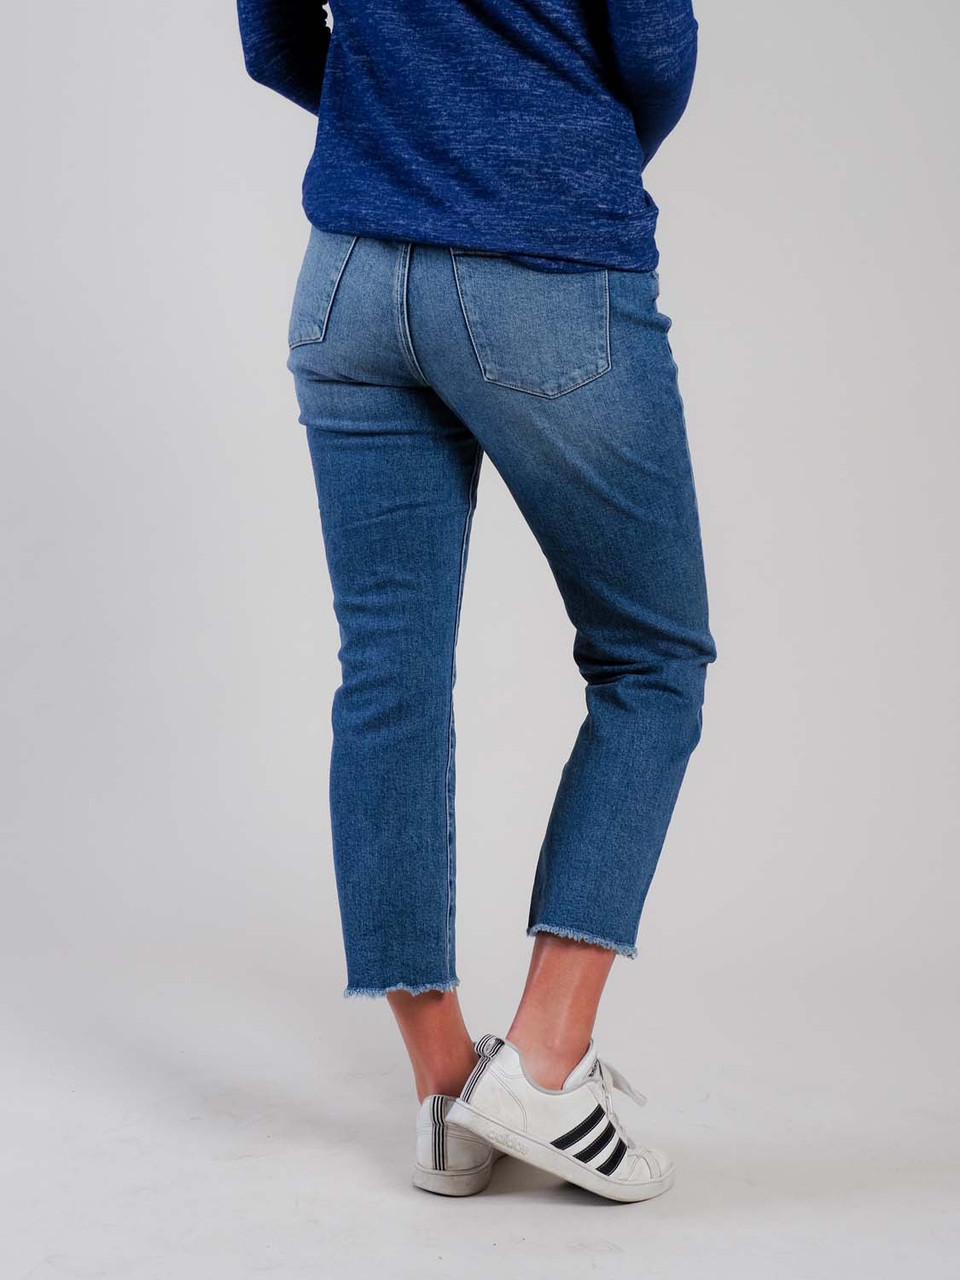 articles of society Kate granger high waisted jean